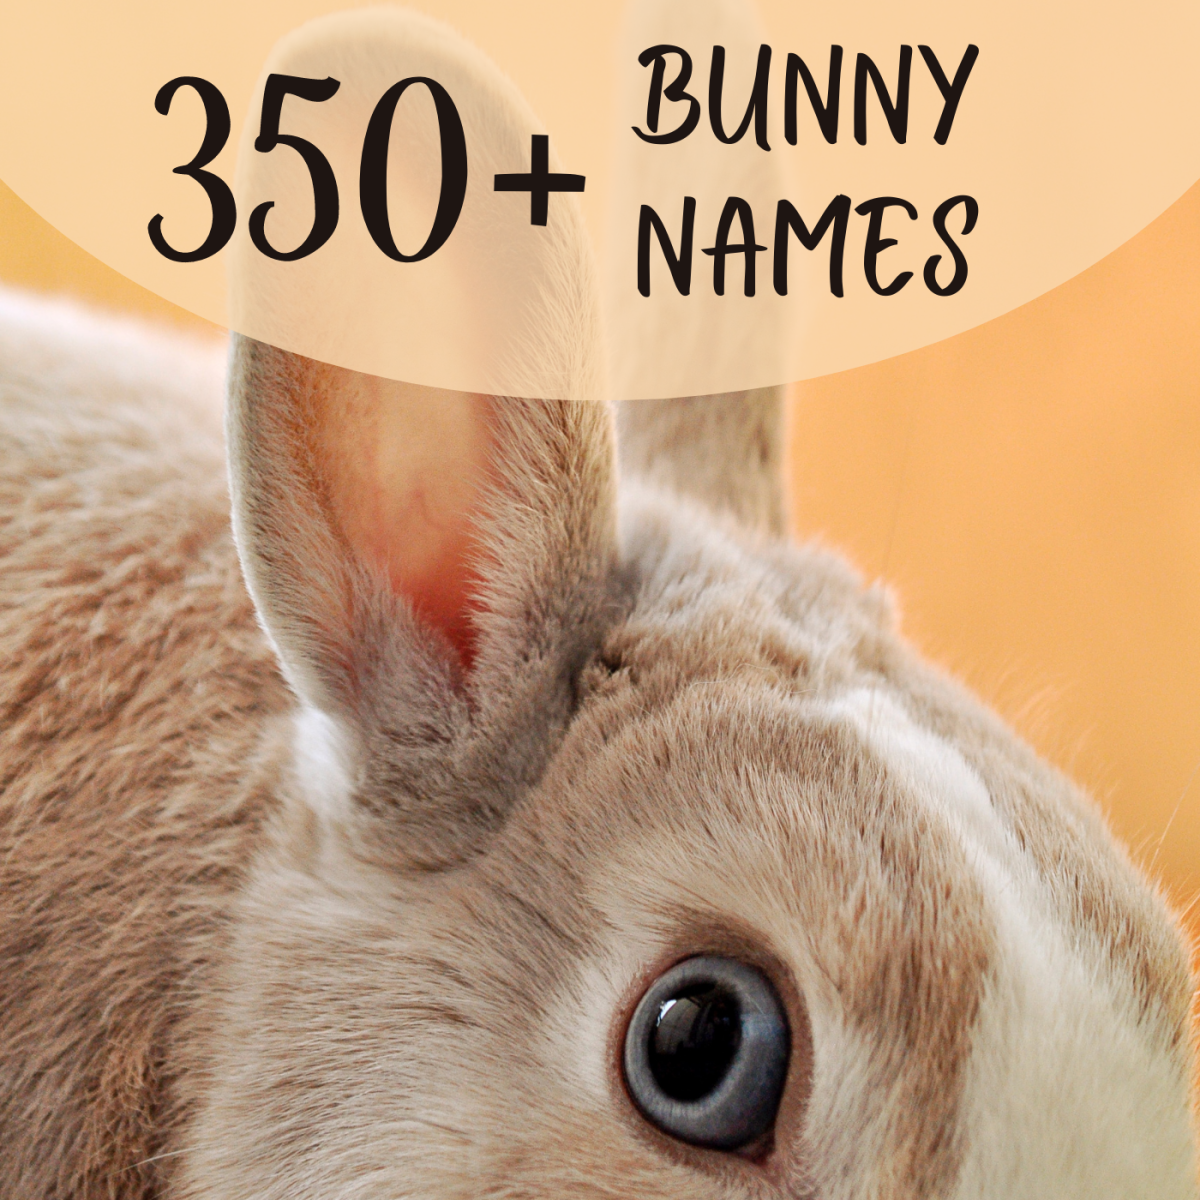 Do you have a new baby rabbit or full-grown bunny, or are you thinking of getting one? Either way, you'll need a name! Find some of the cutest and funniest bunny names here.